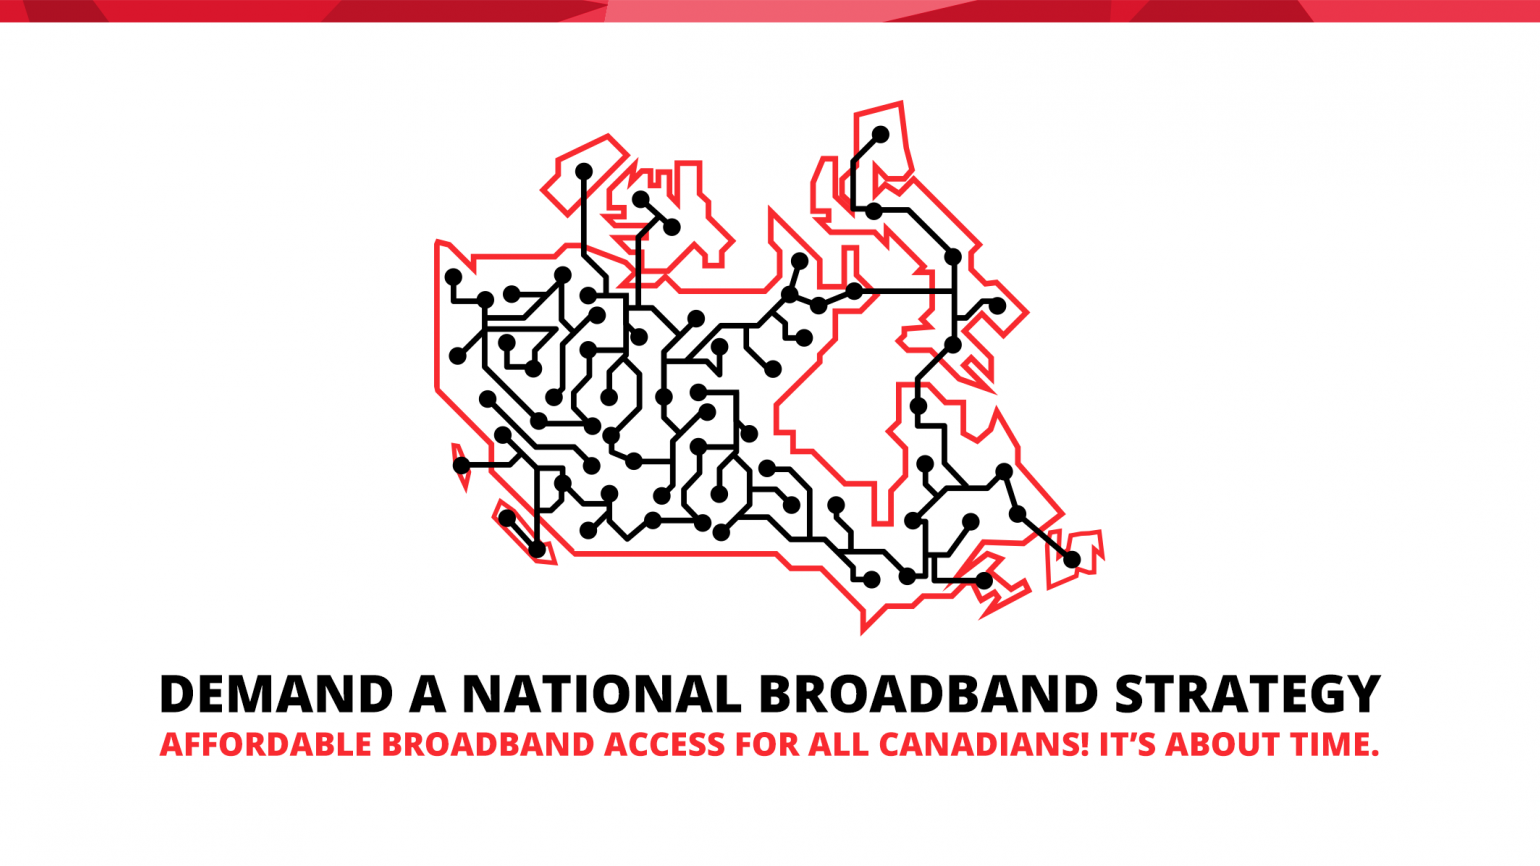 Demand a National Broadband Strategy